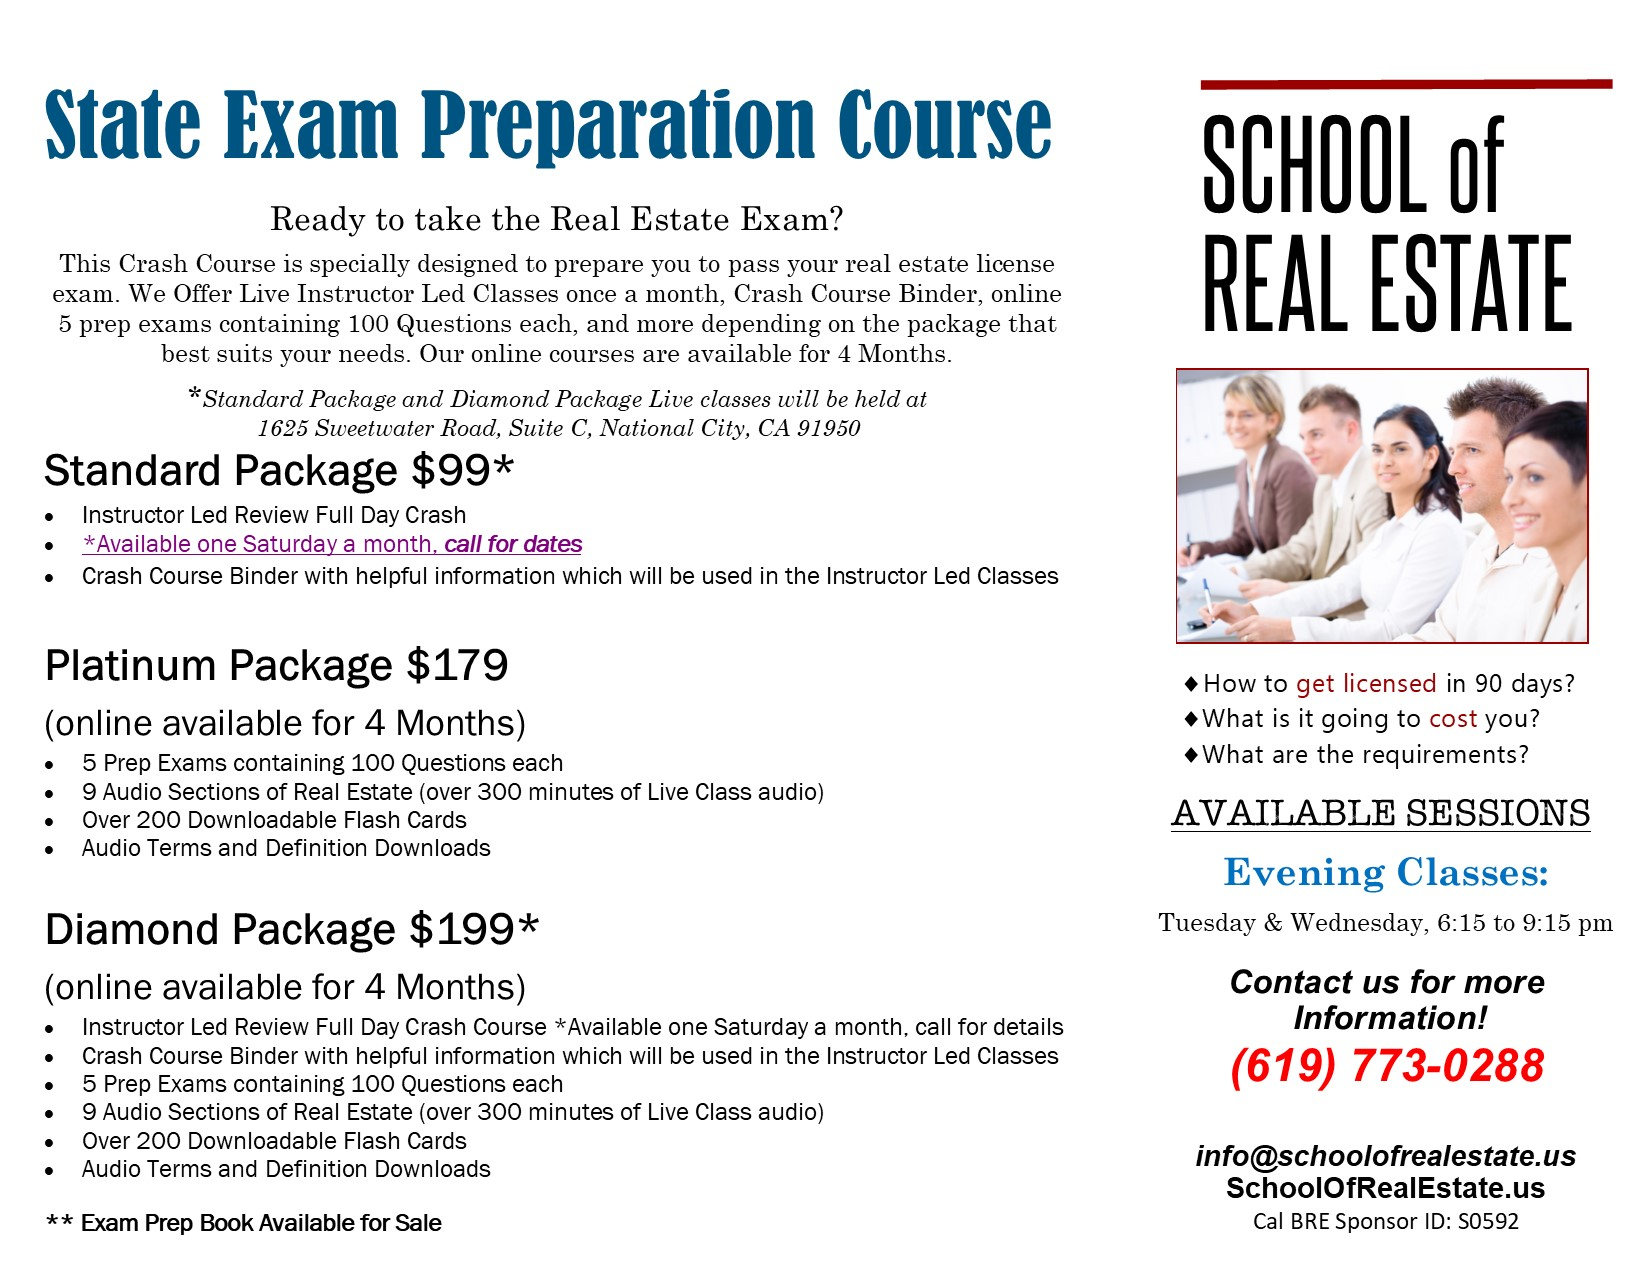 TRI-Fold_SchoolOfRealEstate - Crash Course outside